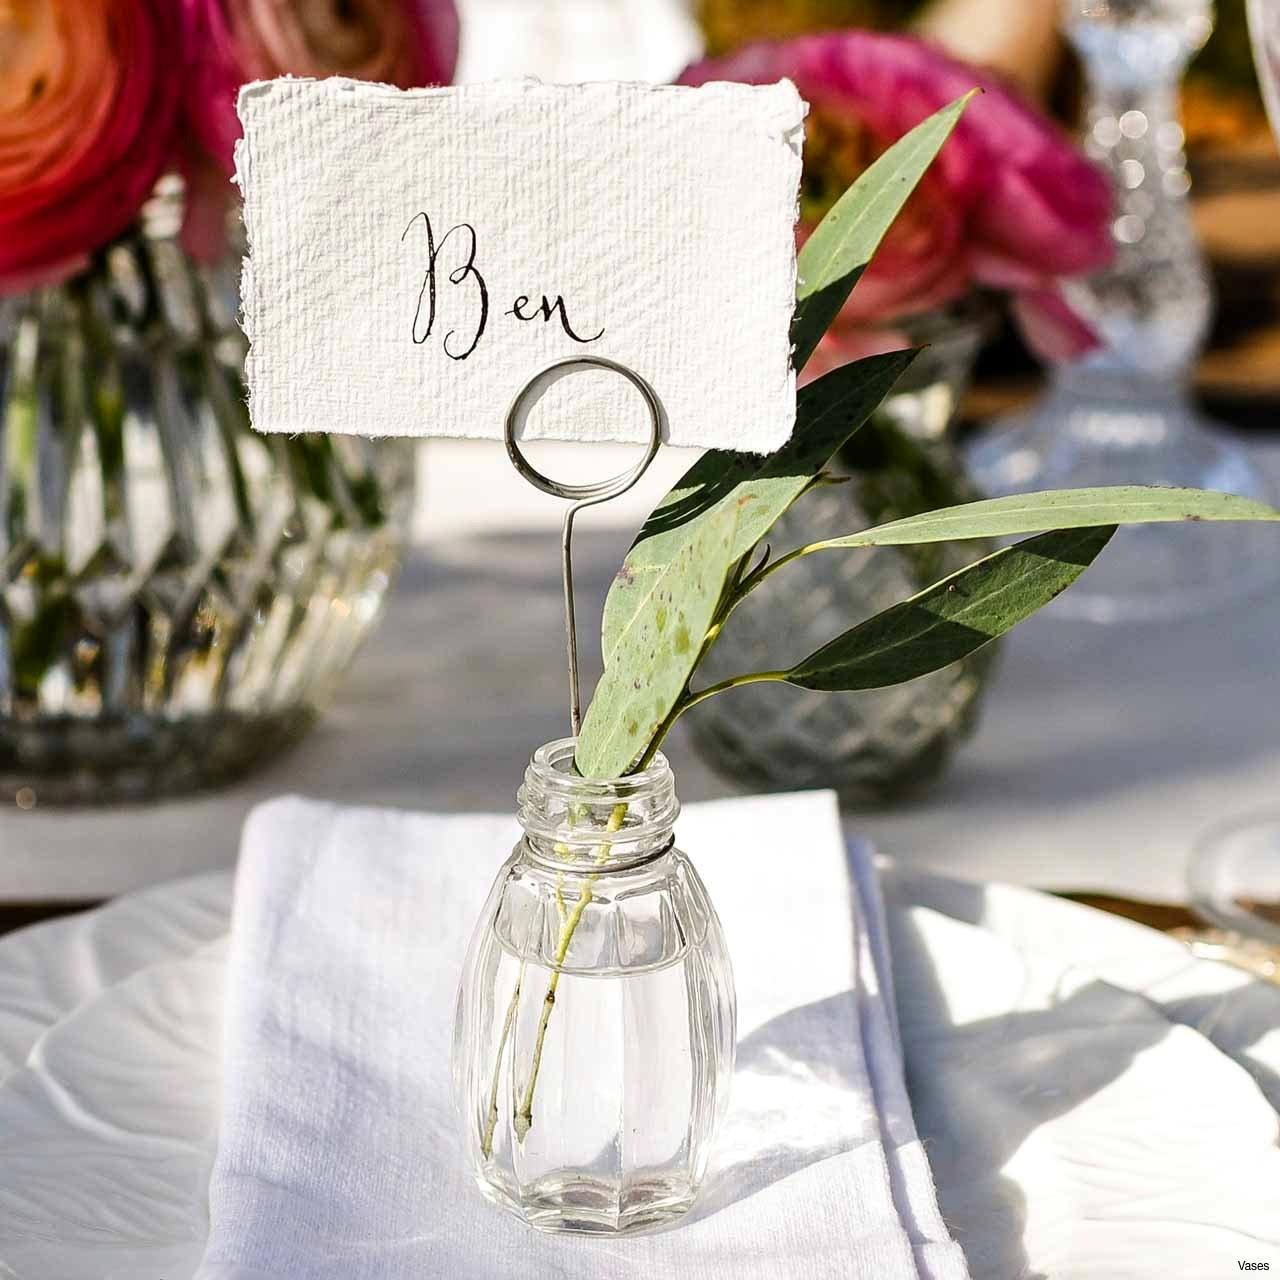 cheap wedding vases in bulk of wedding place card holders inspirational jar flower 1h vases wedding in jar flower 1h vases wedding bud vase centerpiece idea i 0d bulk